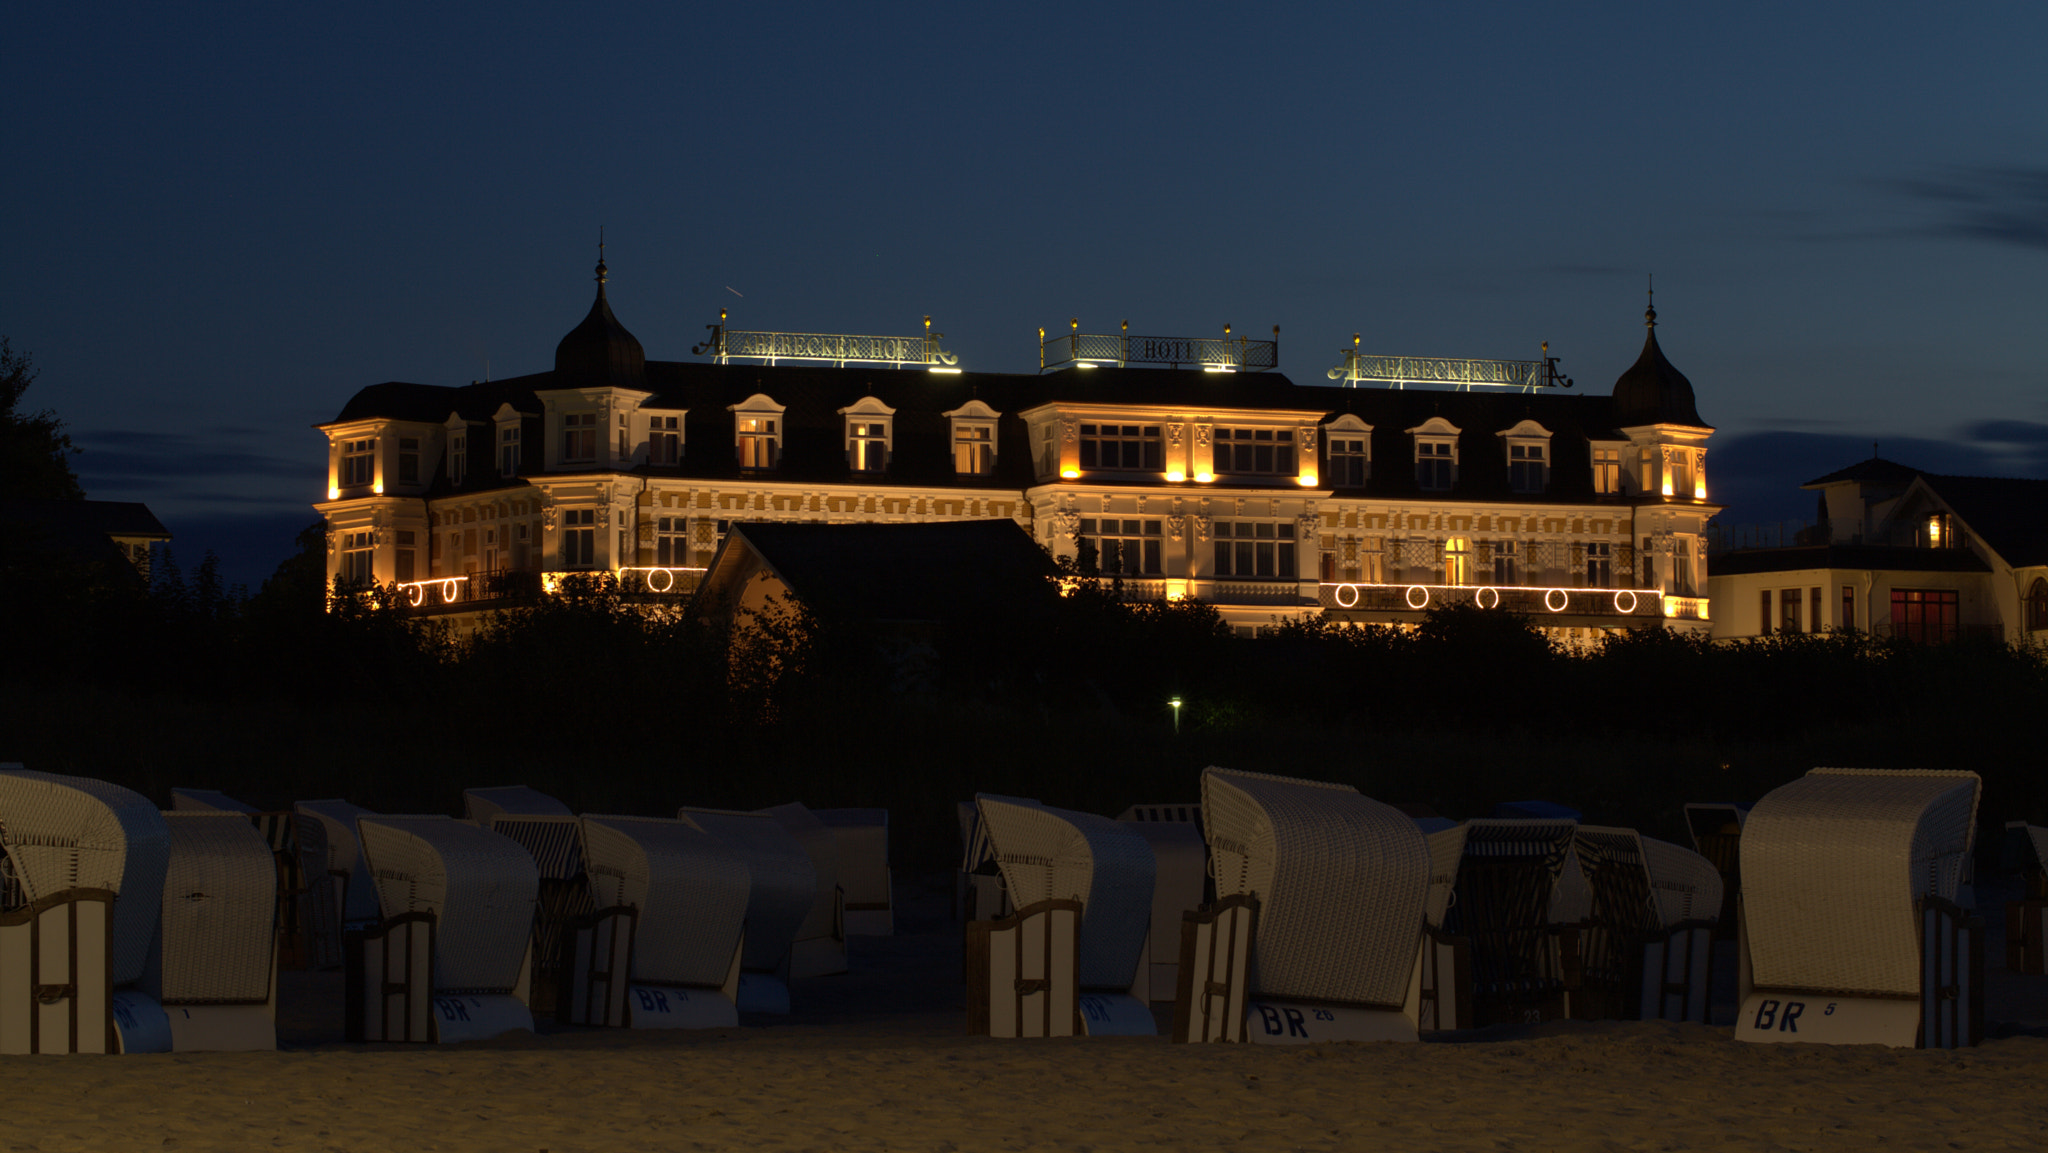 Photograph Ahlbecker Hof at Night by Peter Samow on 500px